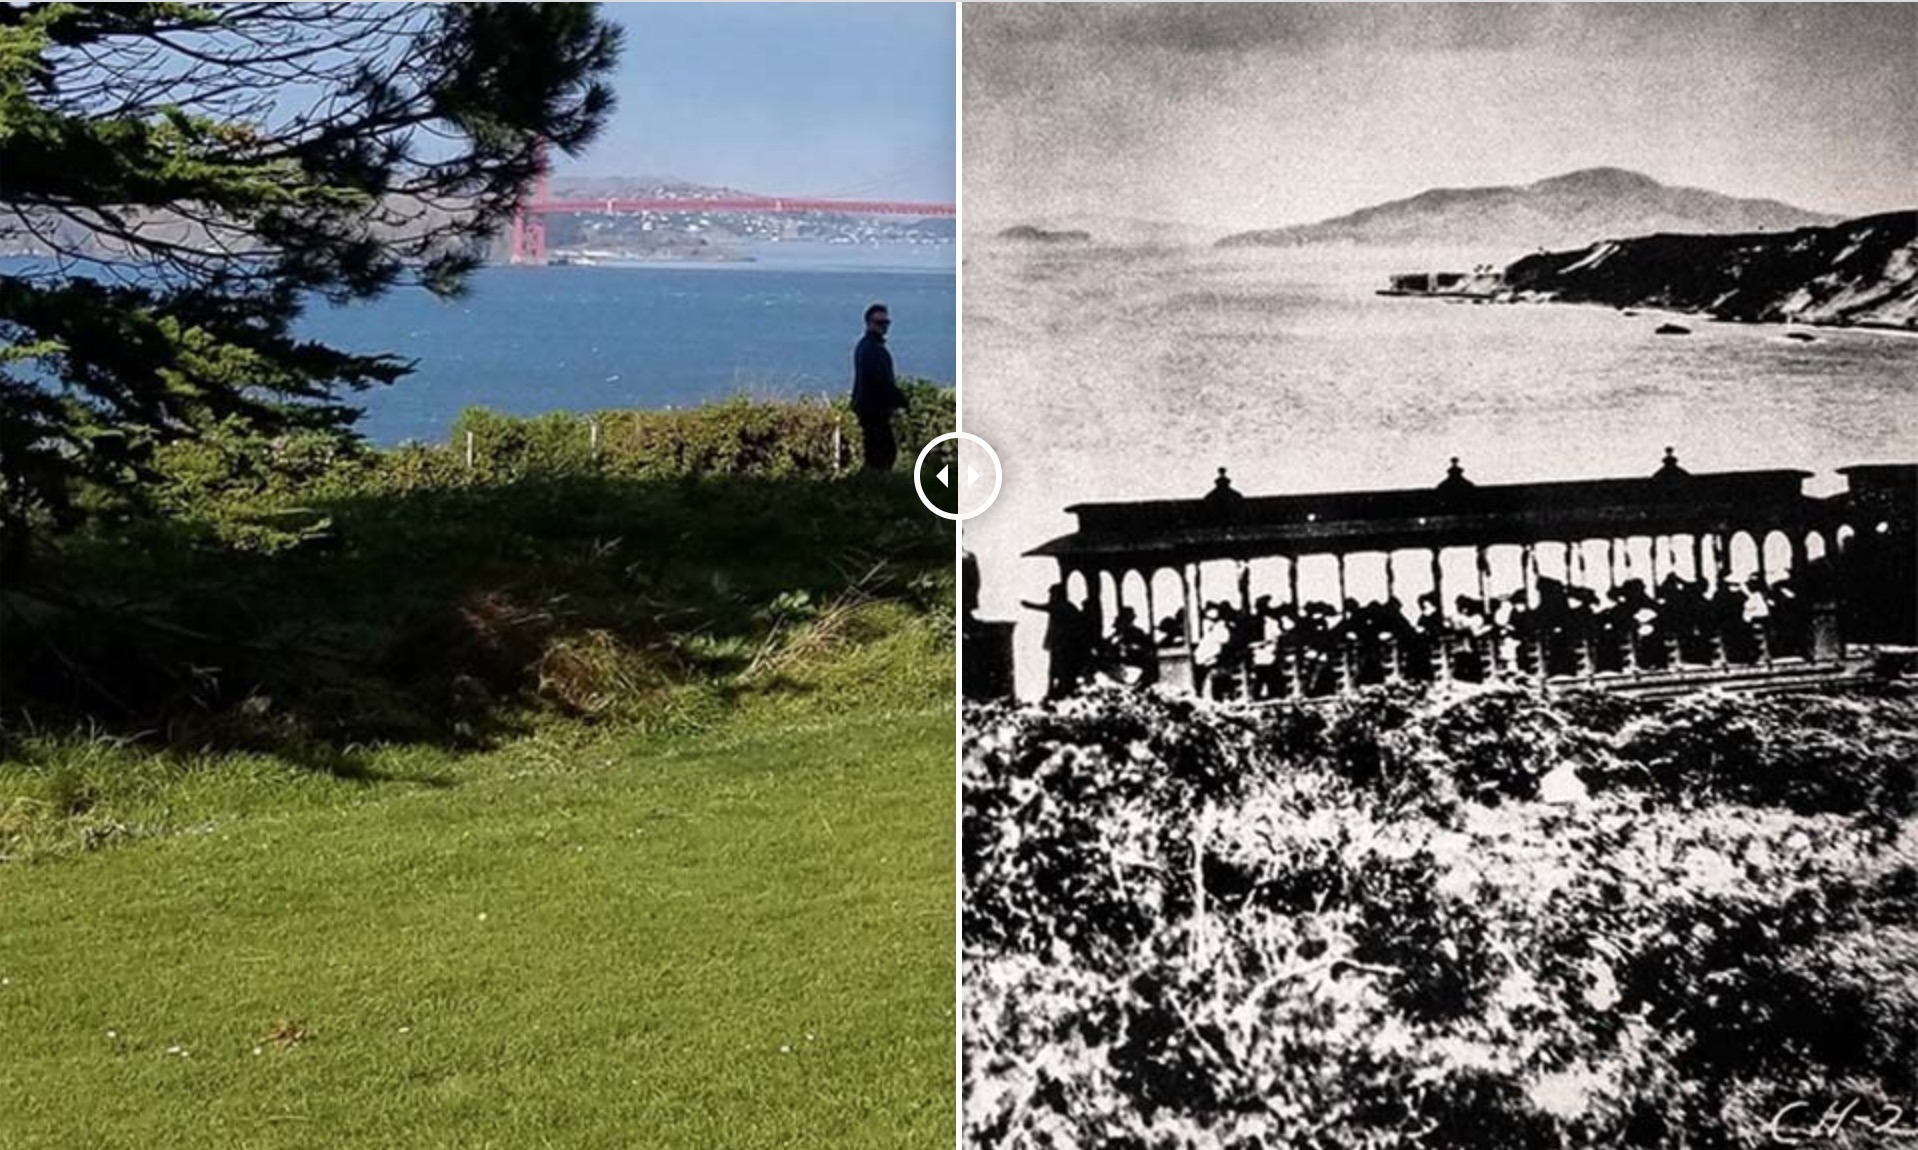 """Then and Now"" comparison of the 16th fairway of the Lincoln Park Golf Course vs. the same spot during the era of Sutro's Steam Train"